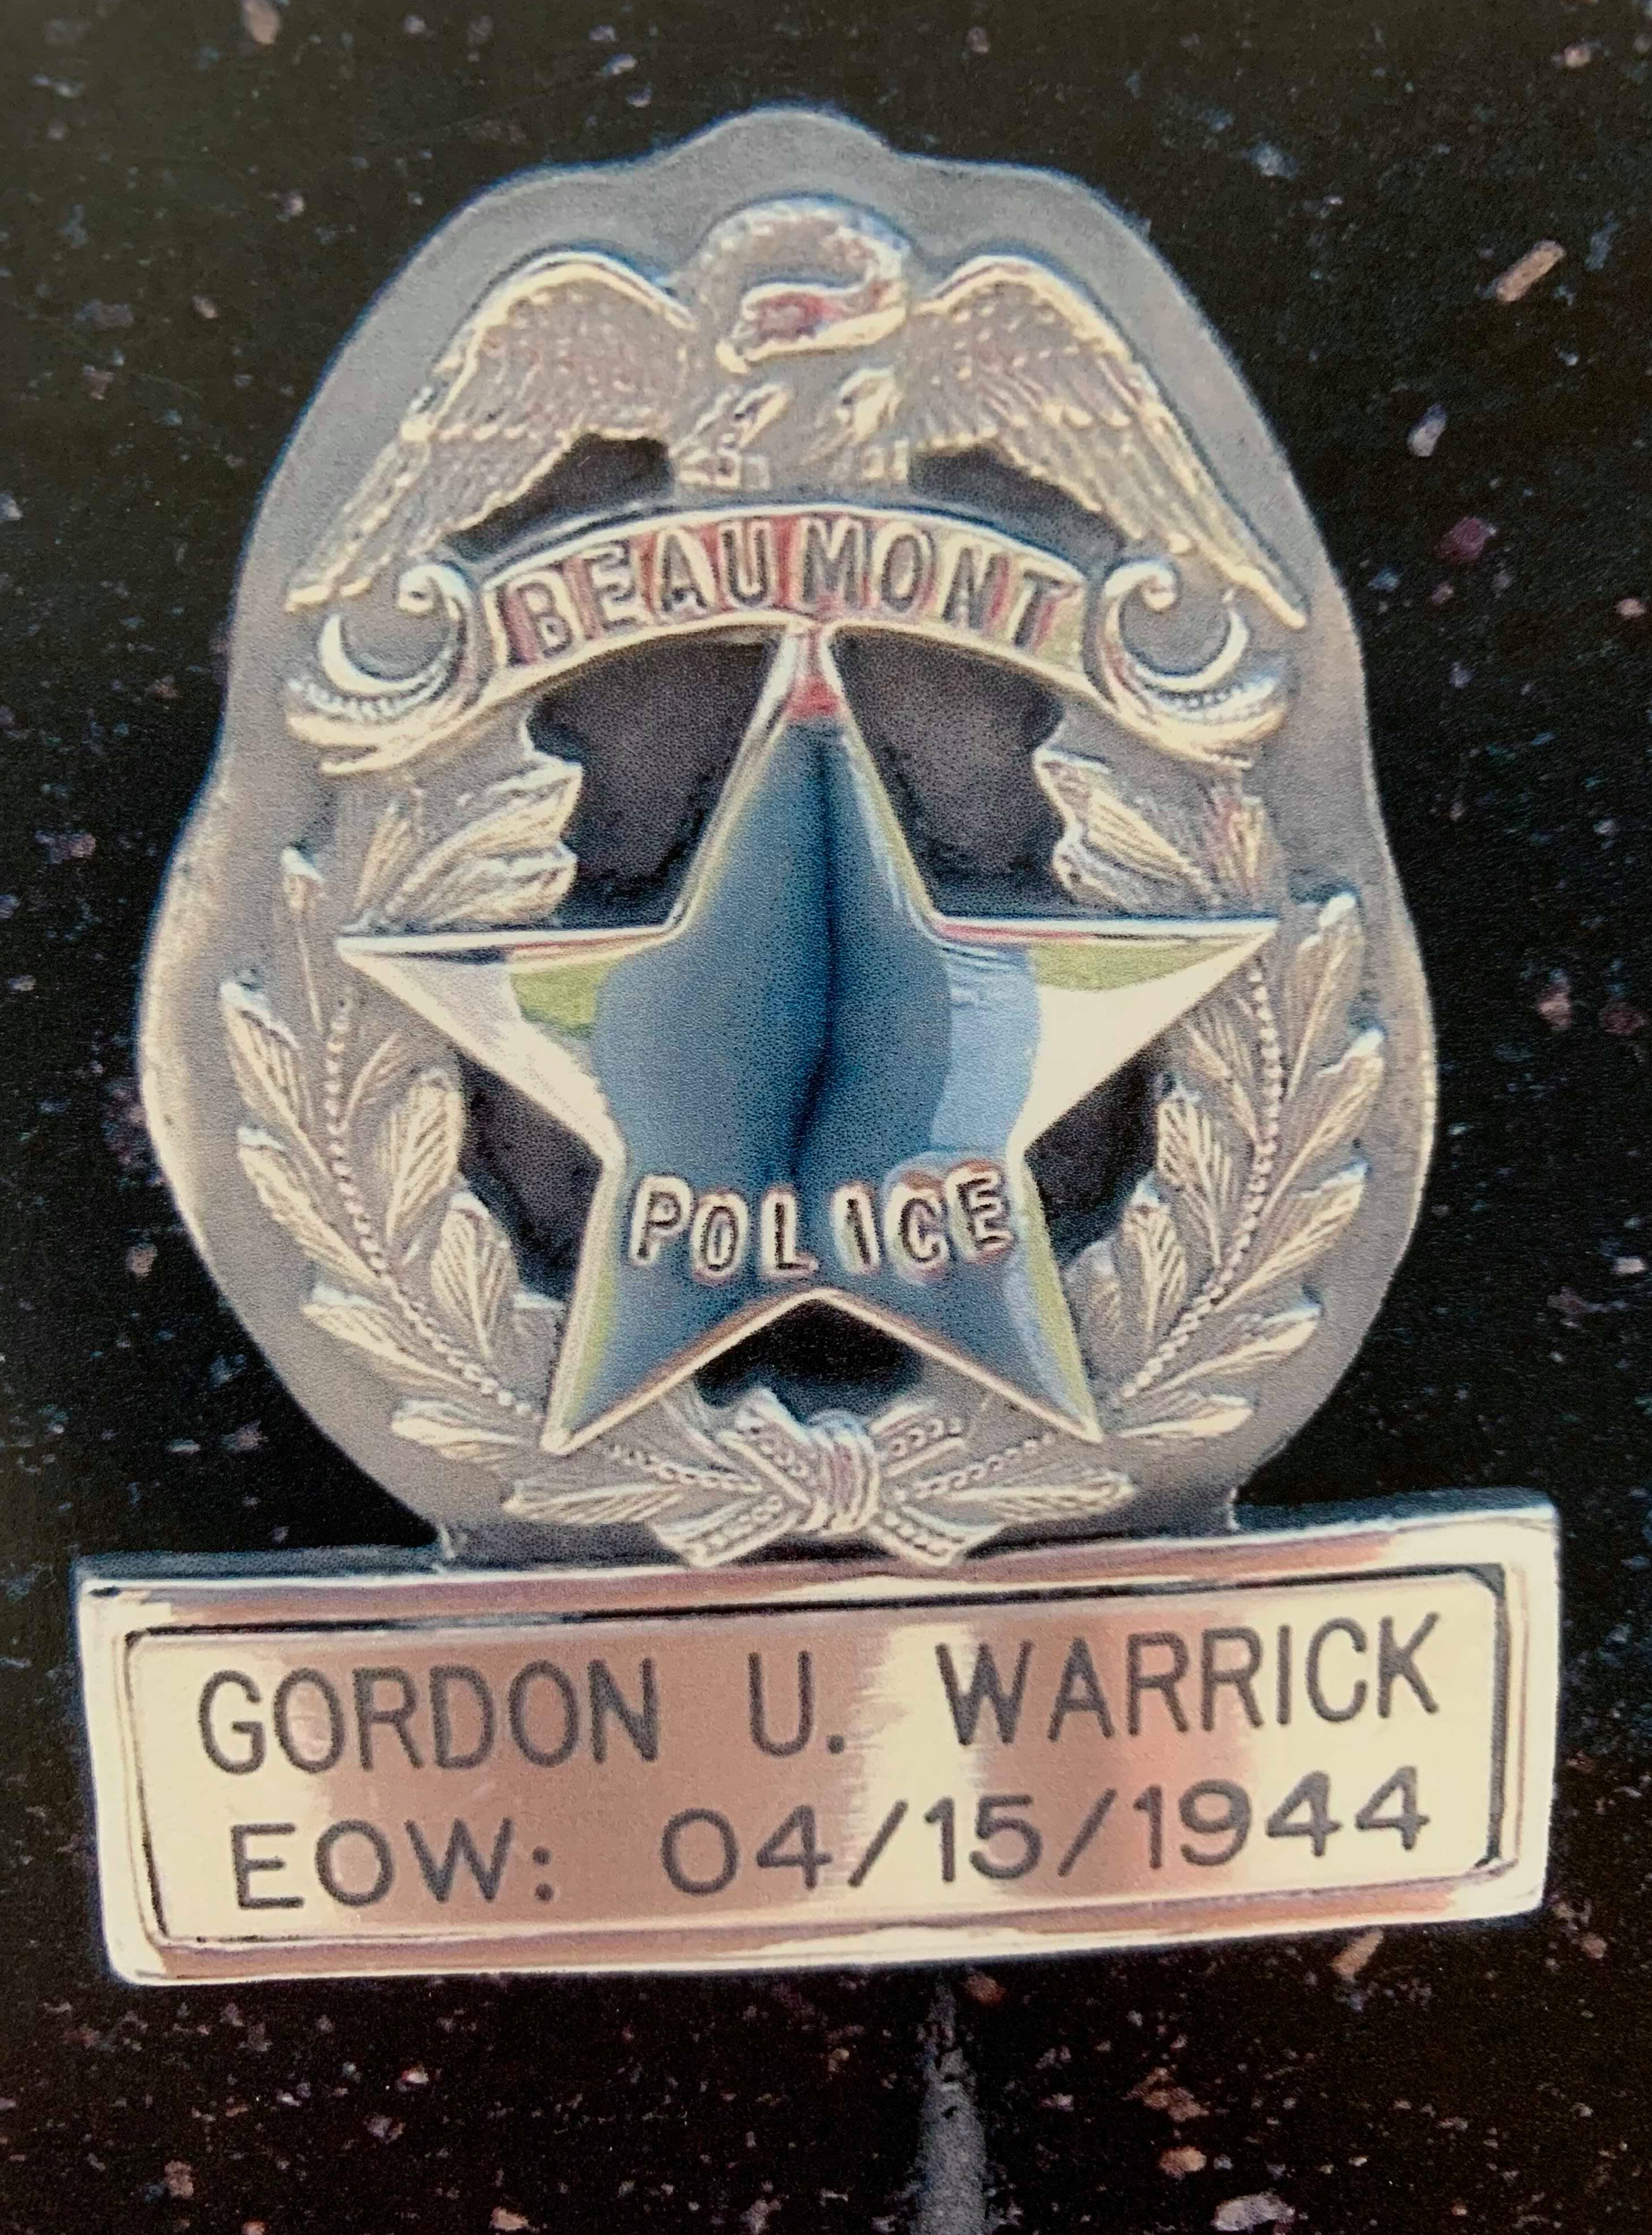 Motorcycle Officer Gordon Udell Warrick | Beaumont Police Department, Texas